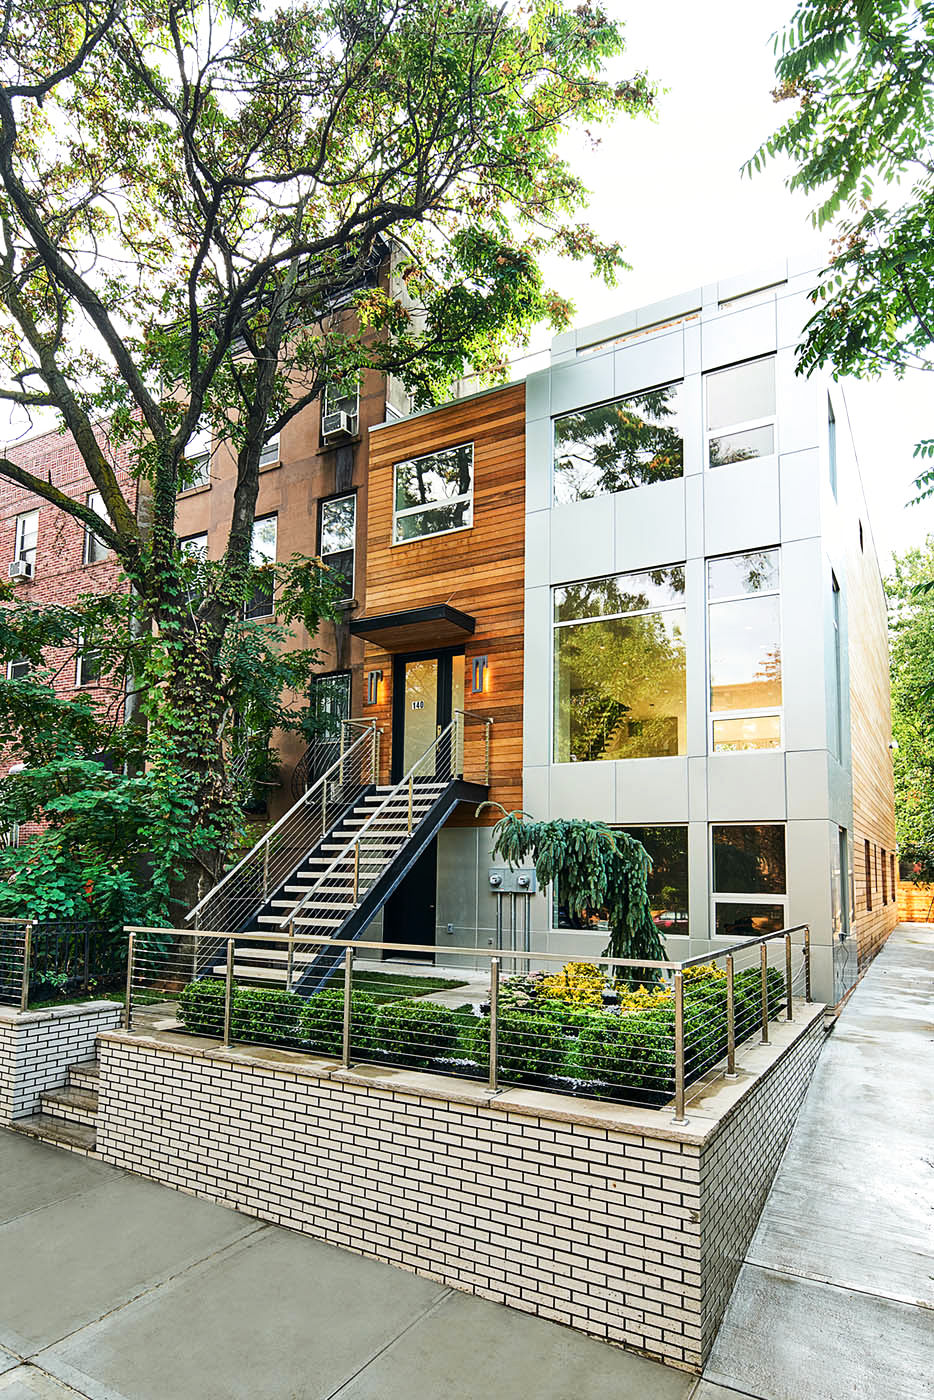 140 Clinton Ave Photo 0 - BROWNSTONER-LISTING-94c55438a96b3a0cf2c748d9935adf82